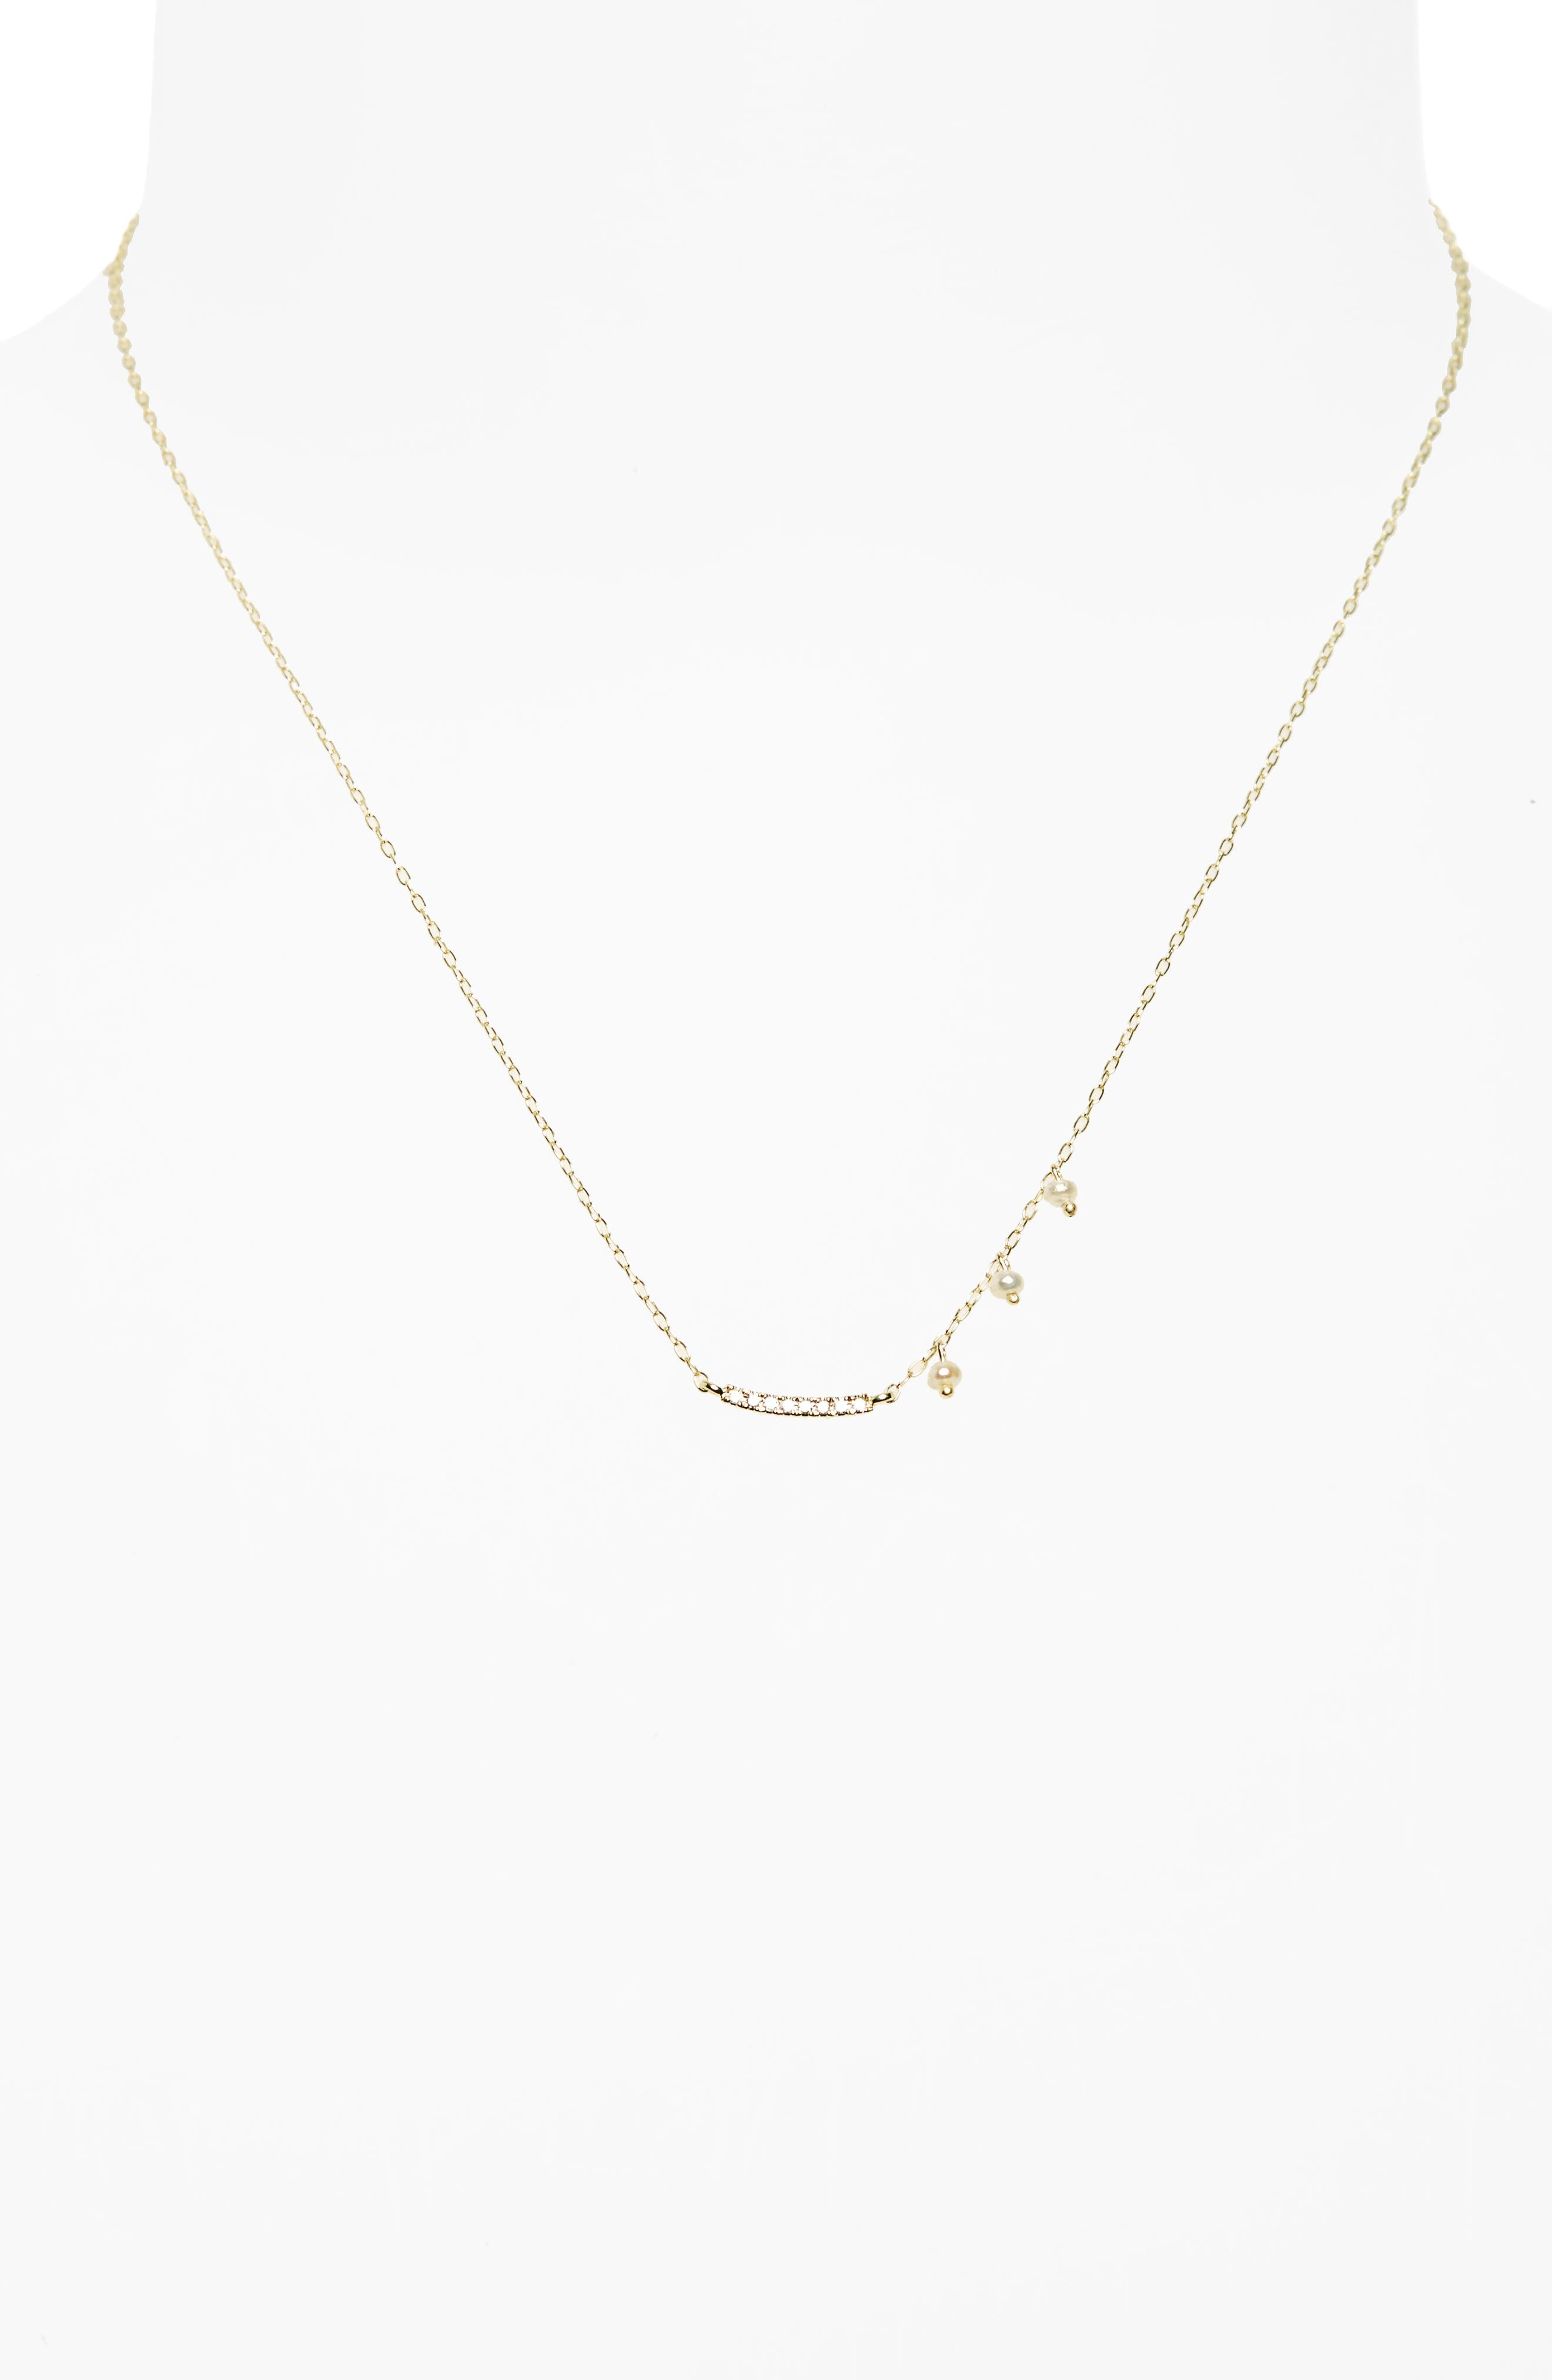 Diamond & Pearl Bar Pendant Necklace,                             Main thumbnail 1, color,                             Yellow Gold